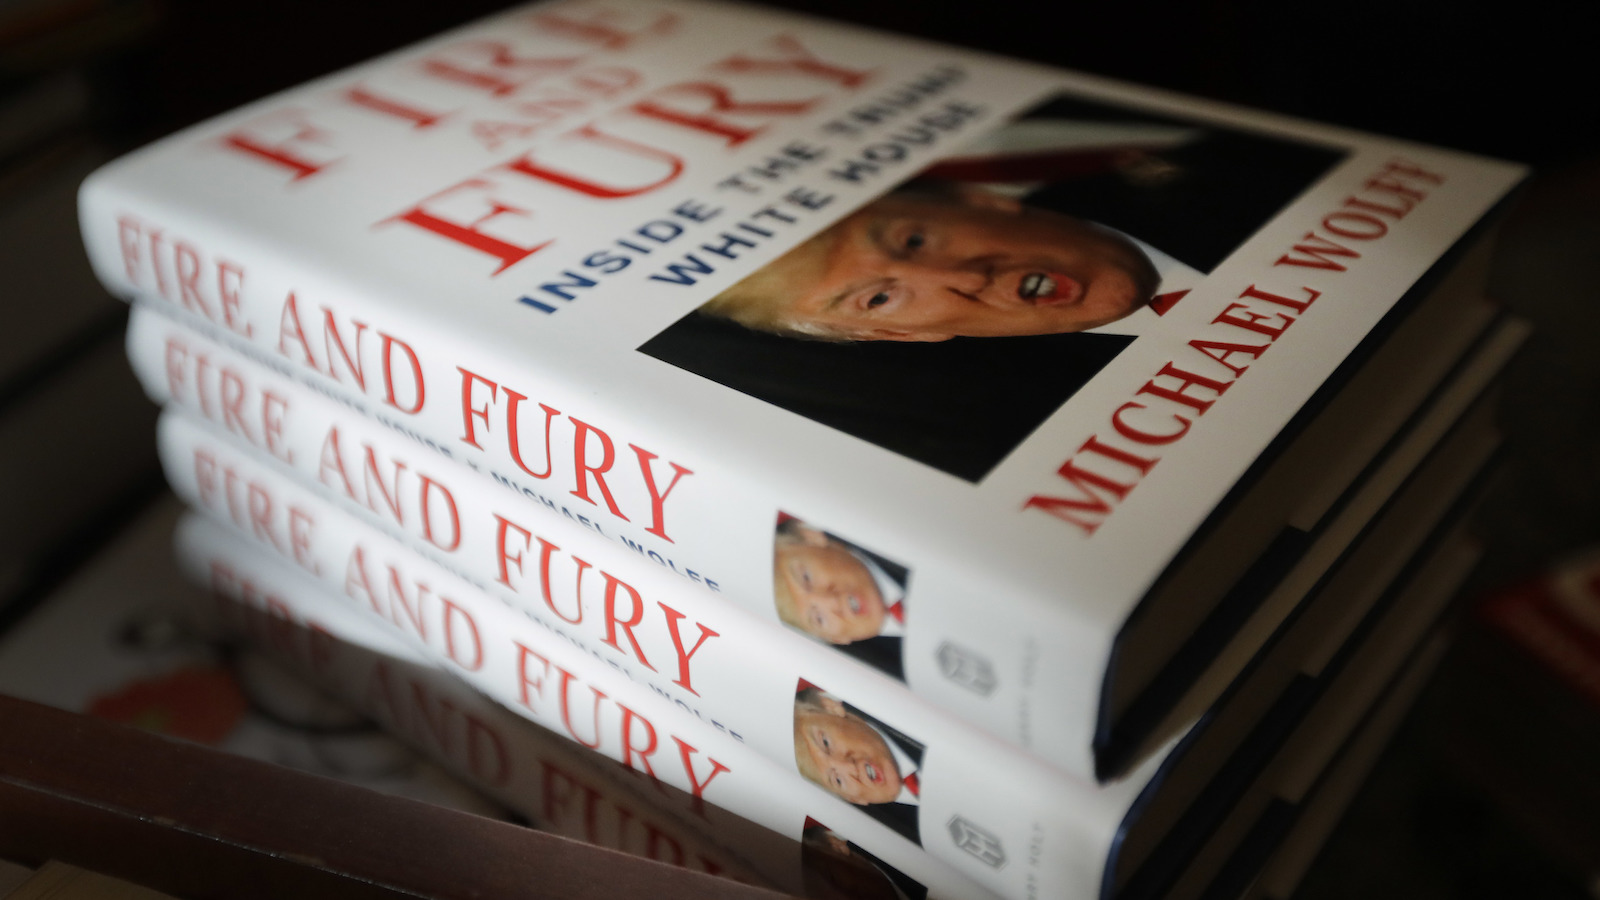 fire and fury michael wolff trump bannon